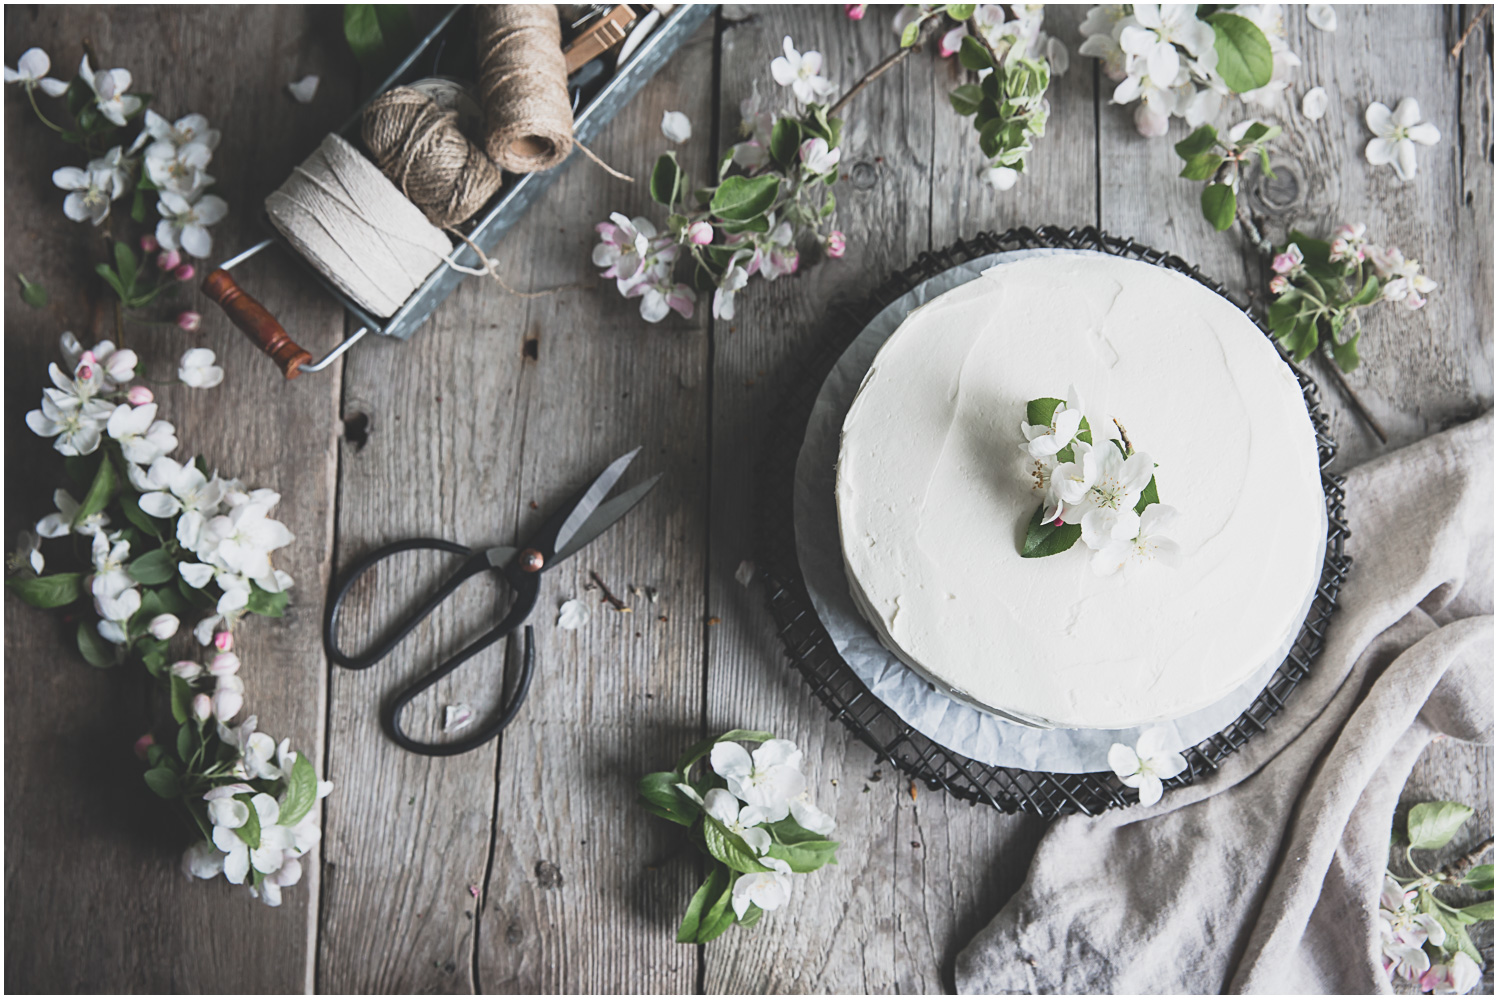 Classic white cake decorated with apple blossoms